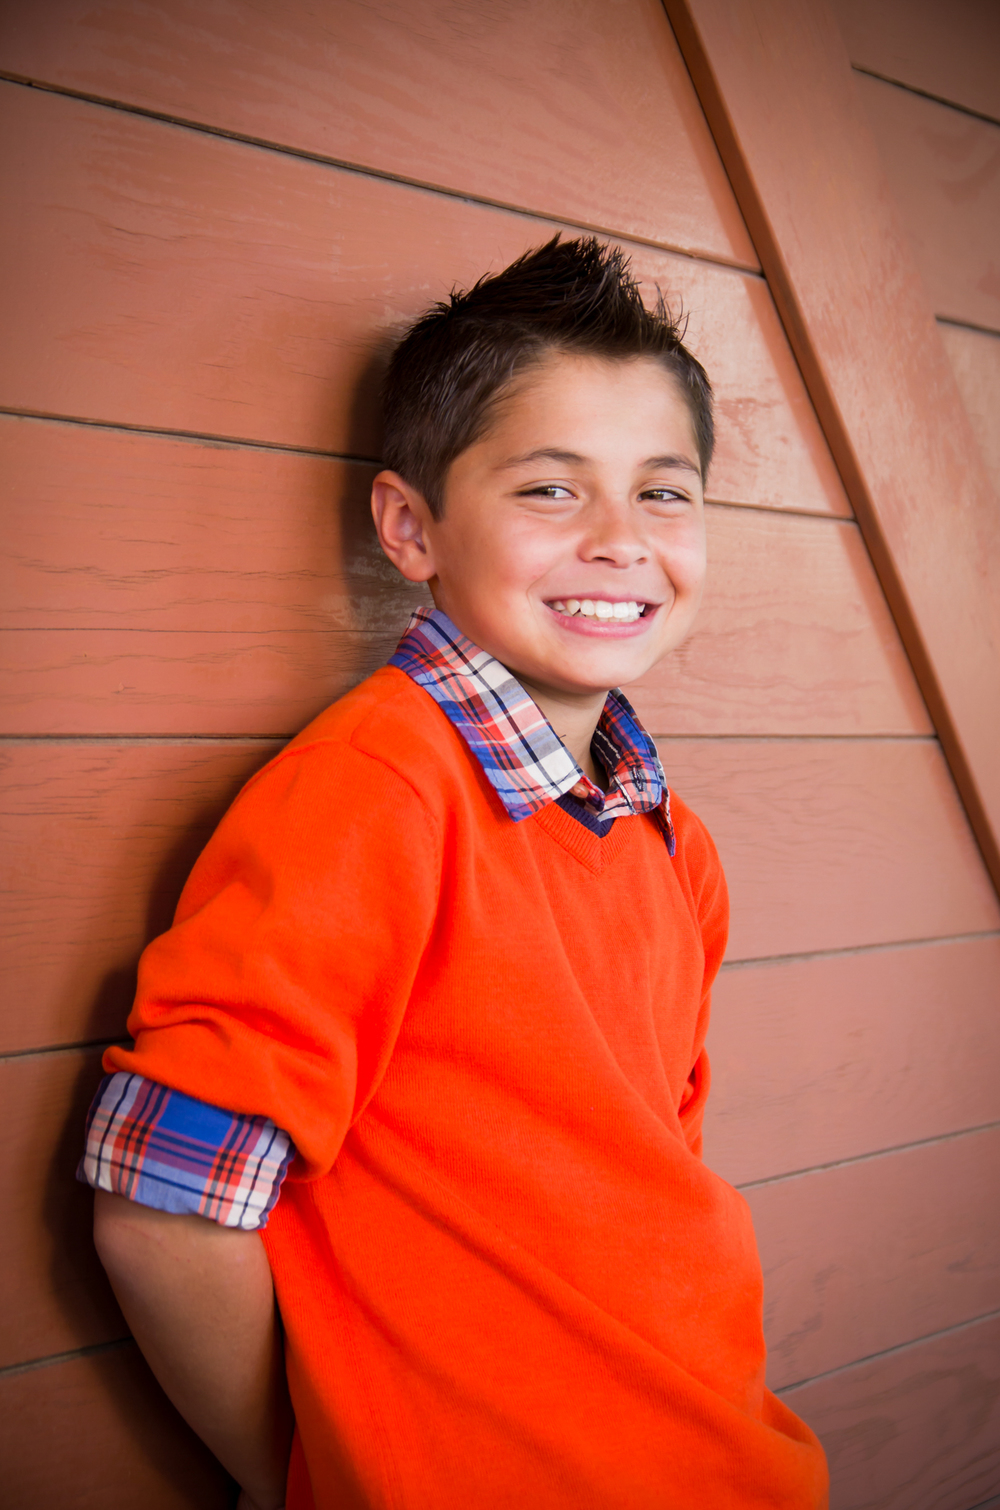 Nick_Cardona_Photography_Gilbert_AZ_Portrait_Photographer-2.jpg